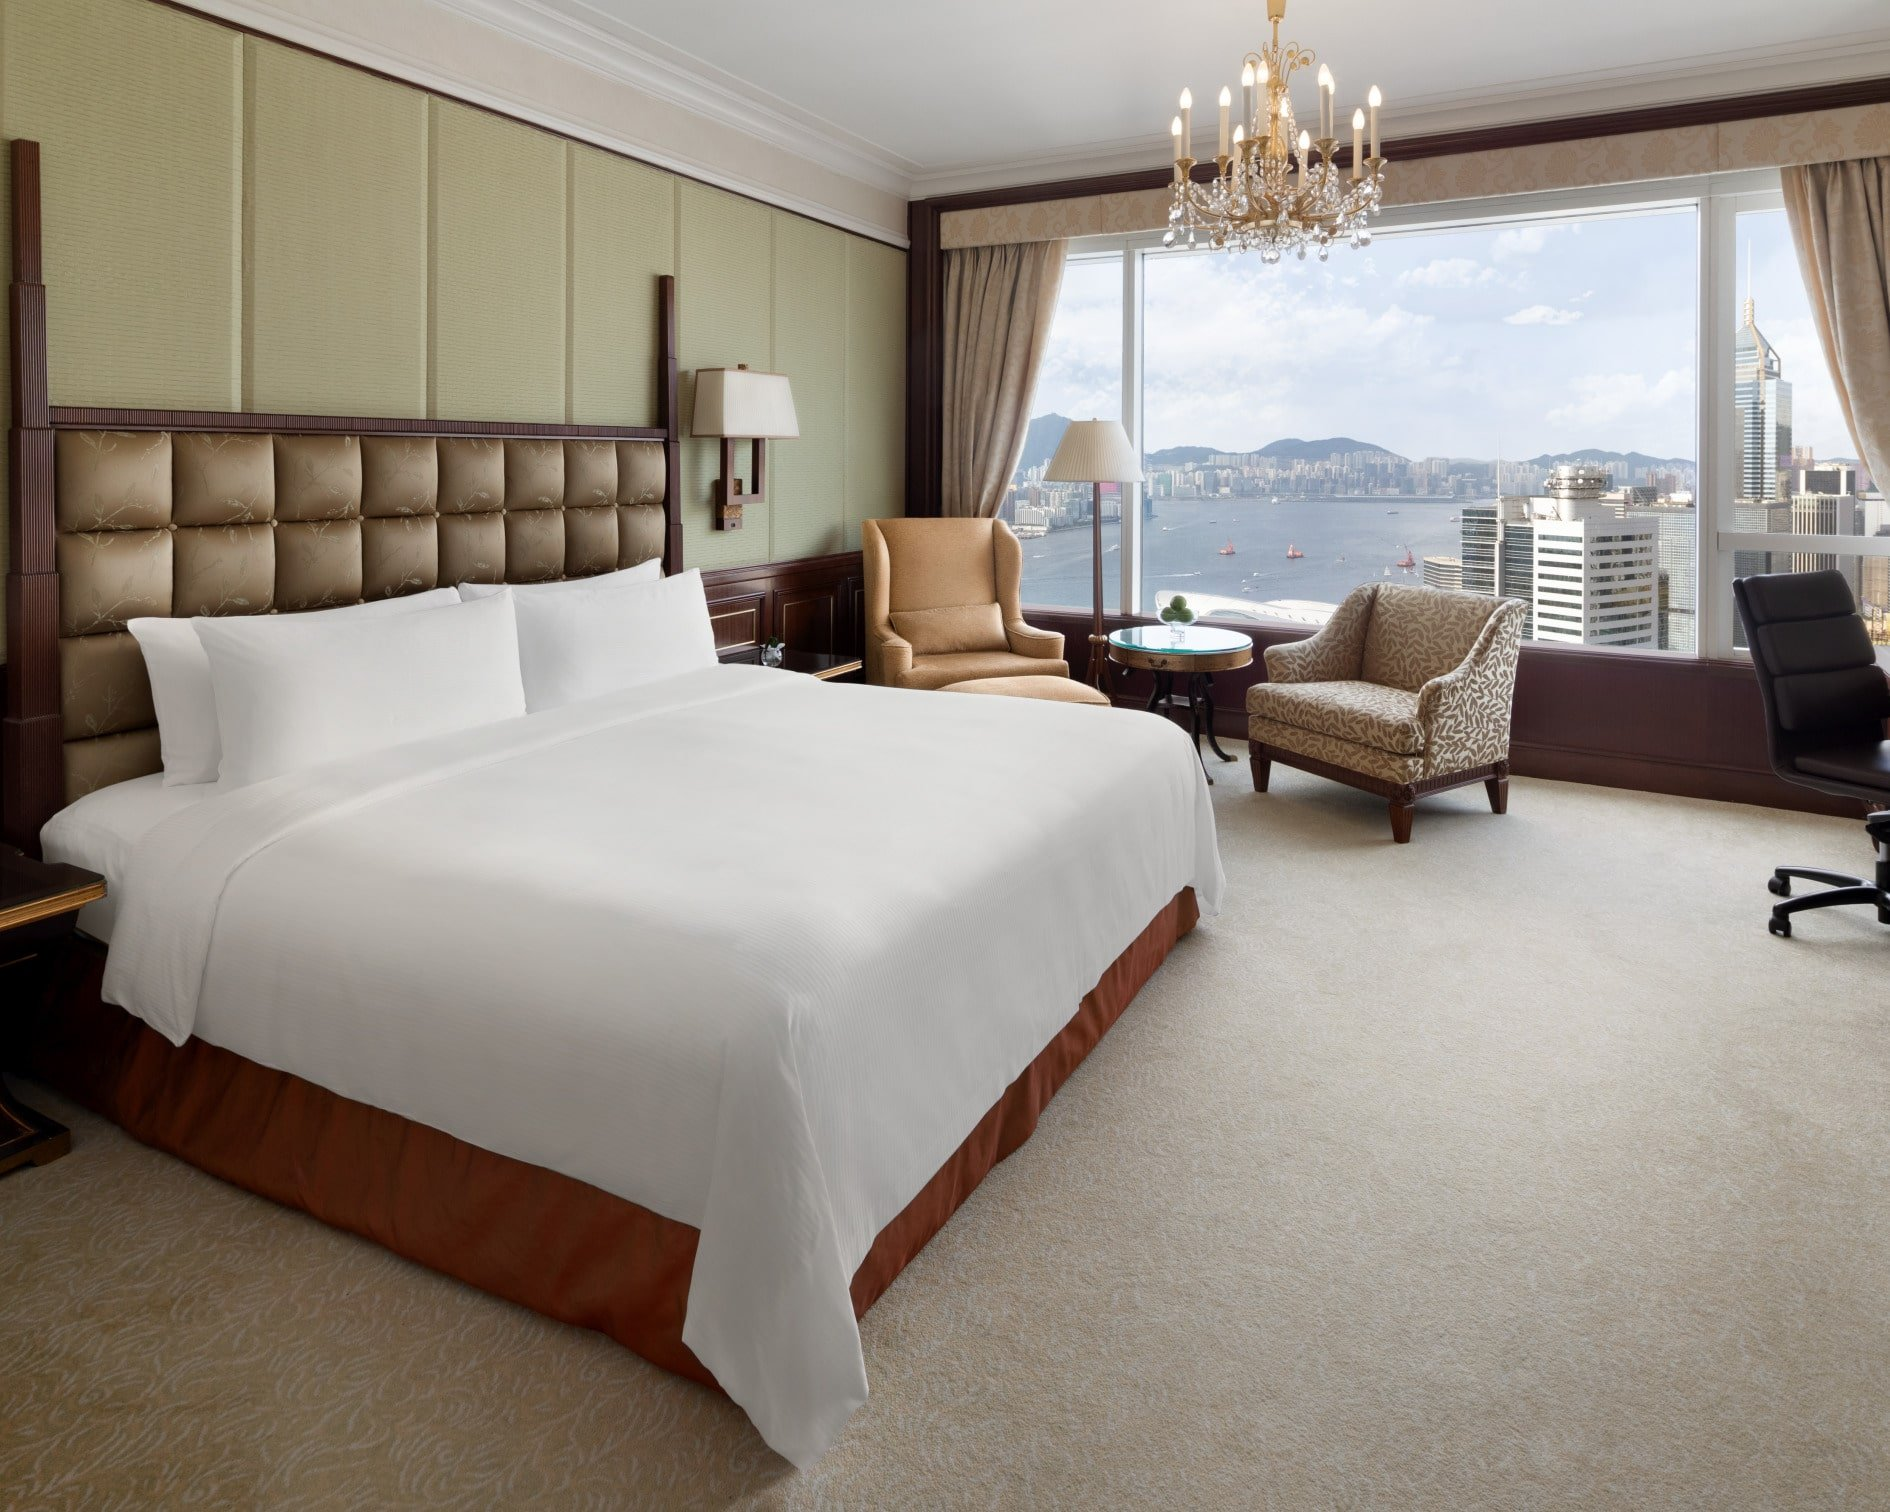 Island Shangri-la Hong Kong hotel Horizon Club Harbour View King